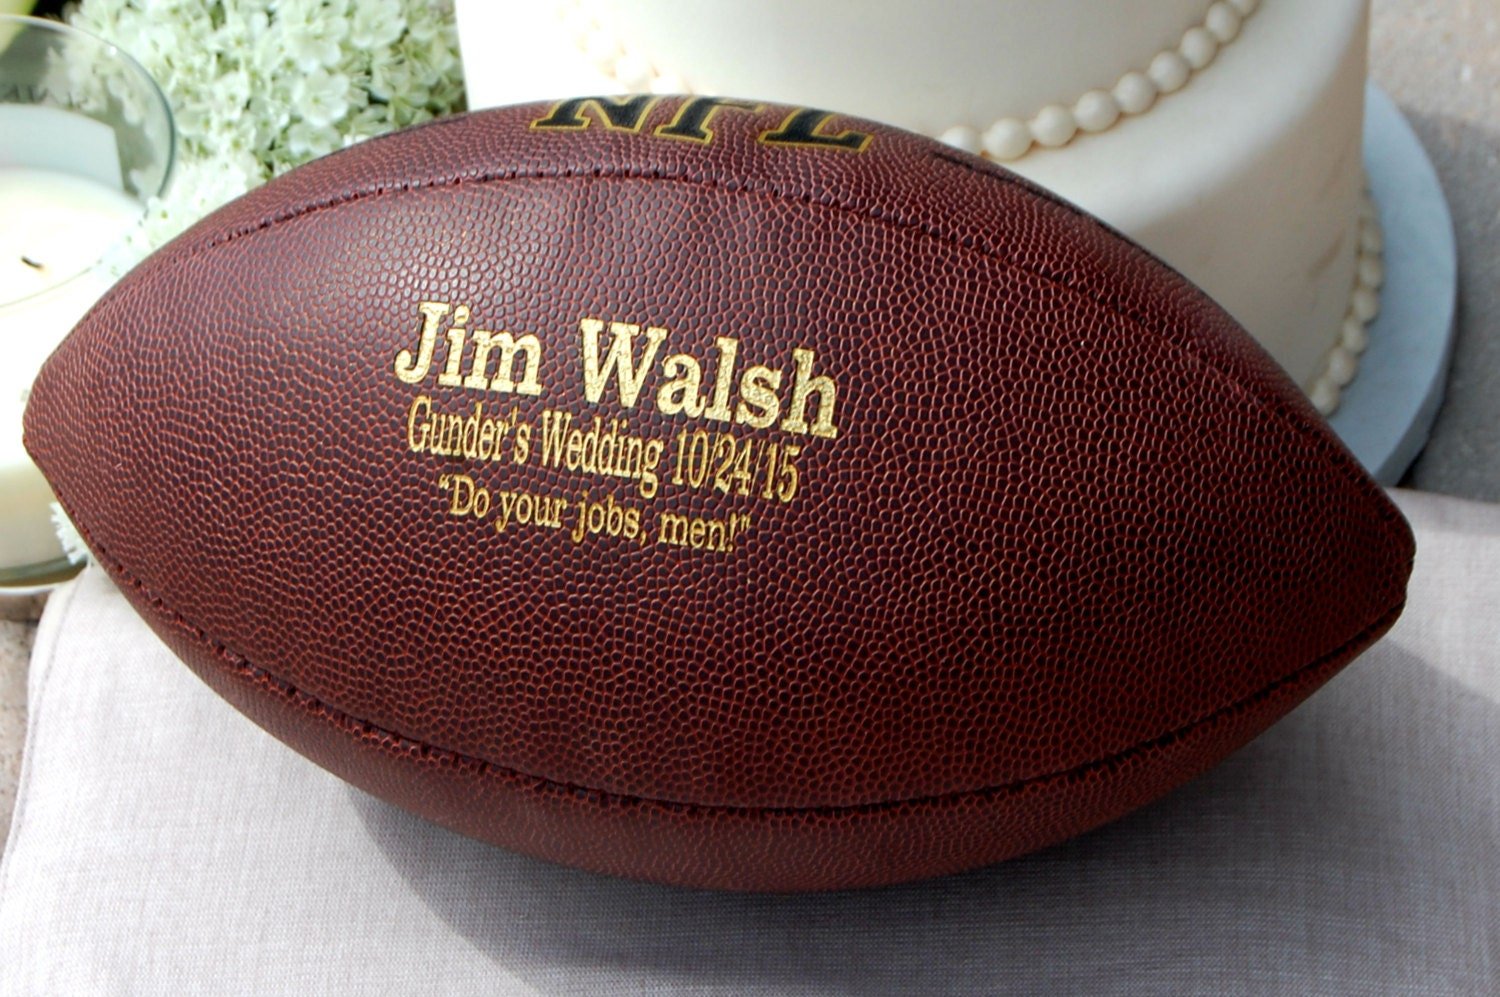 Personalized Football Custom Engraved Football Gifts For